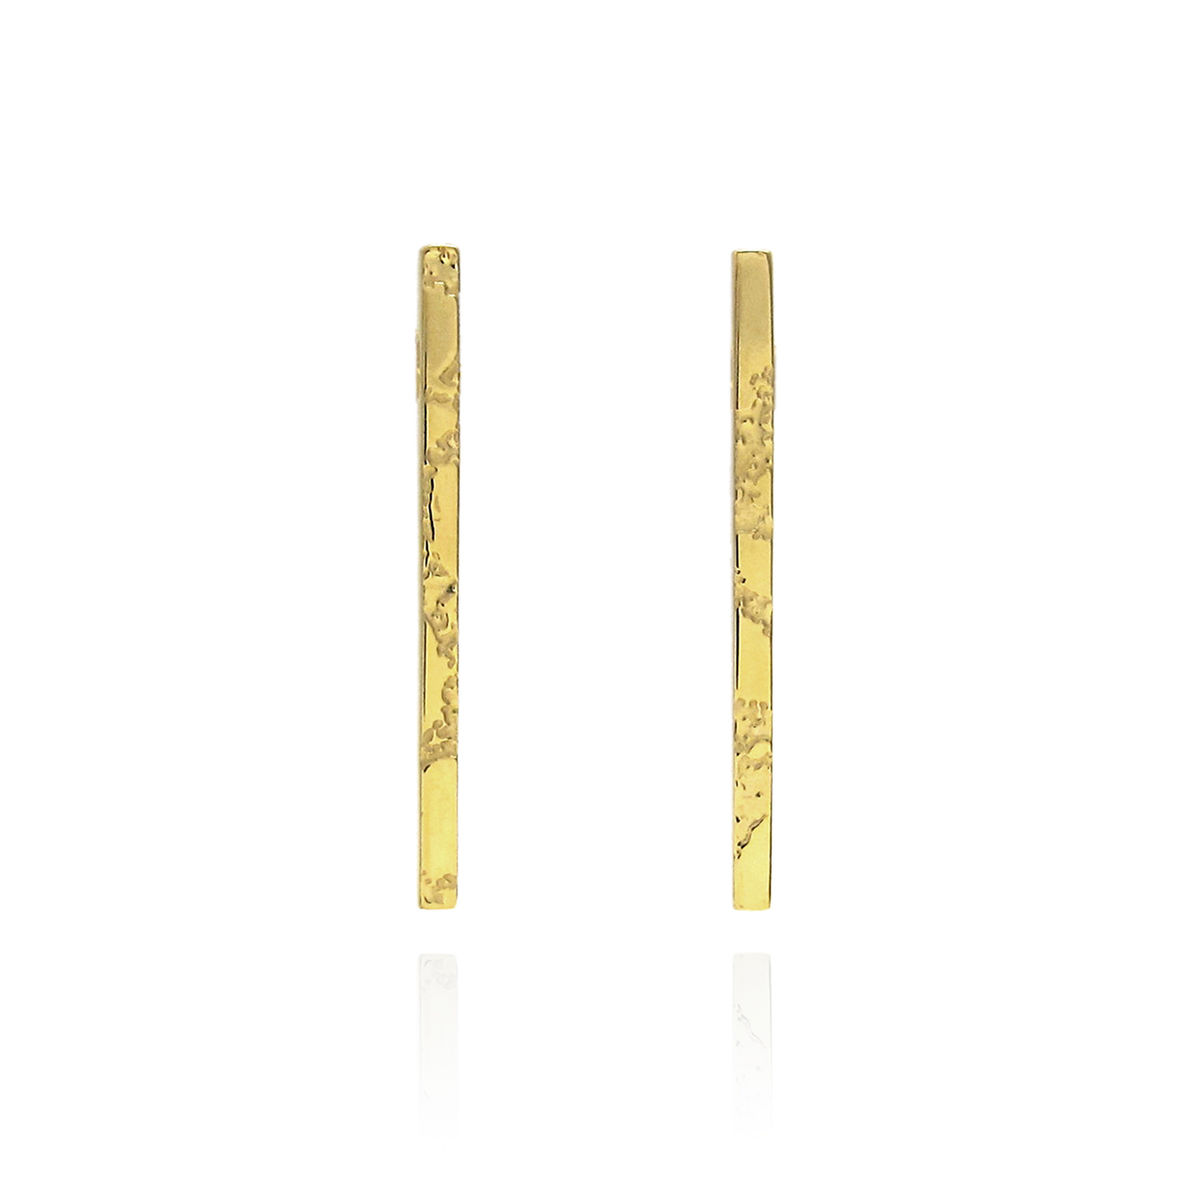 SKIN textured straight bar earrings - gold plated silver - product image